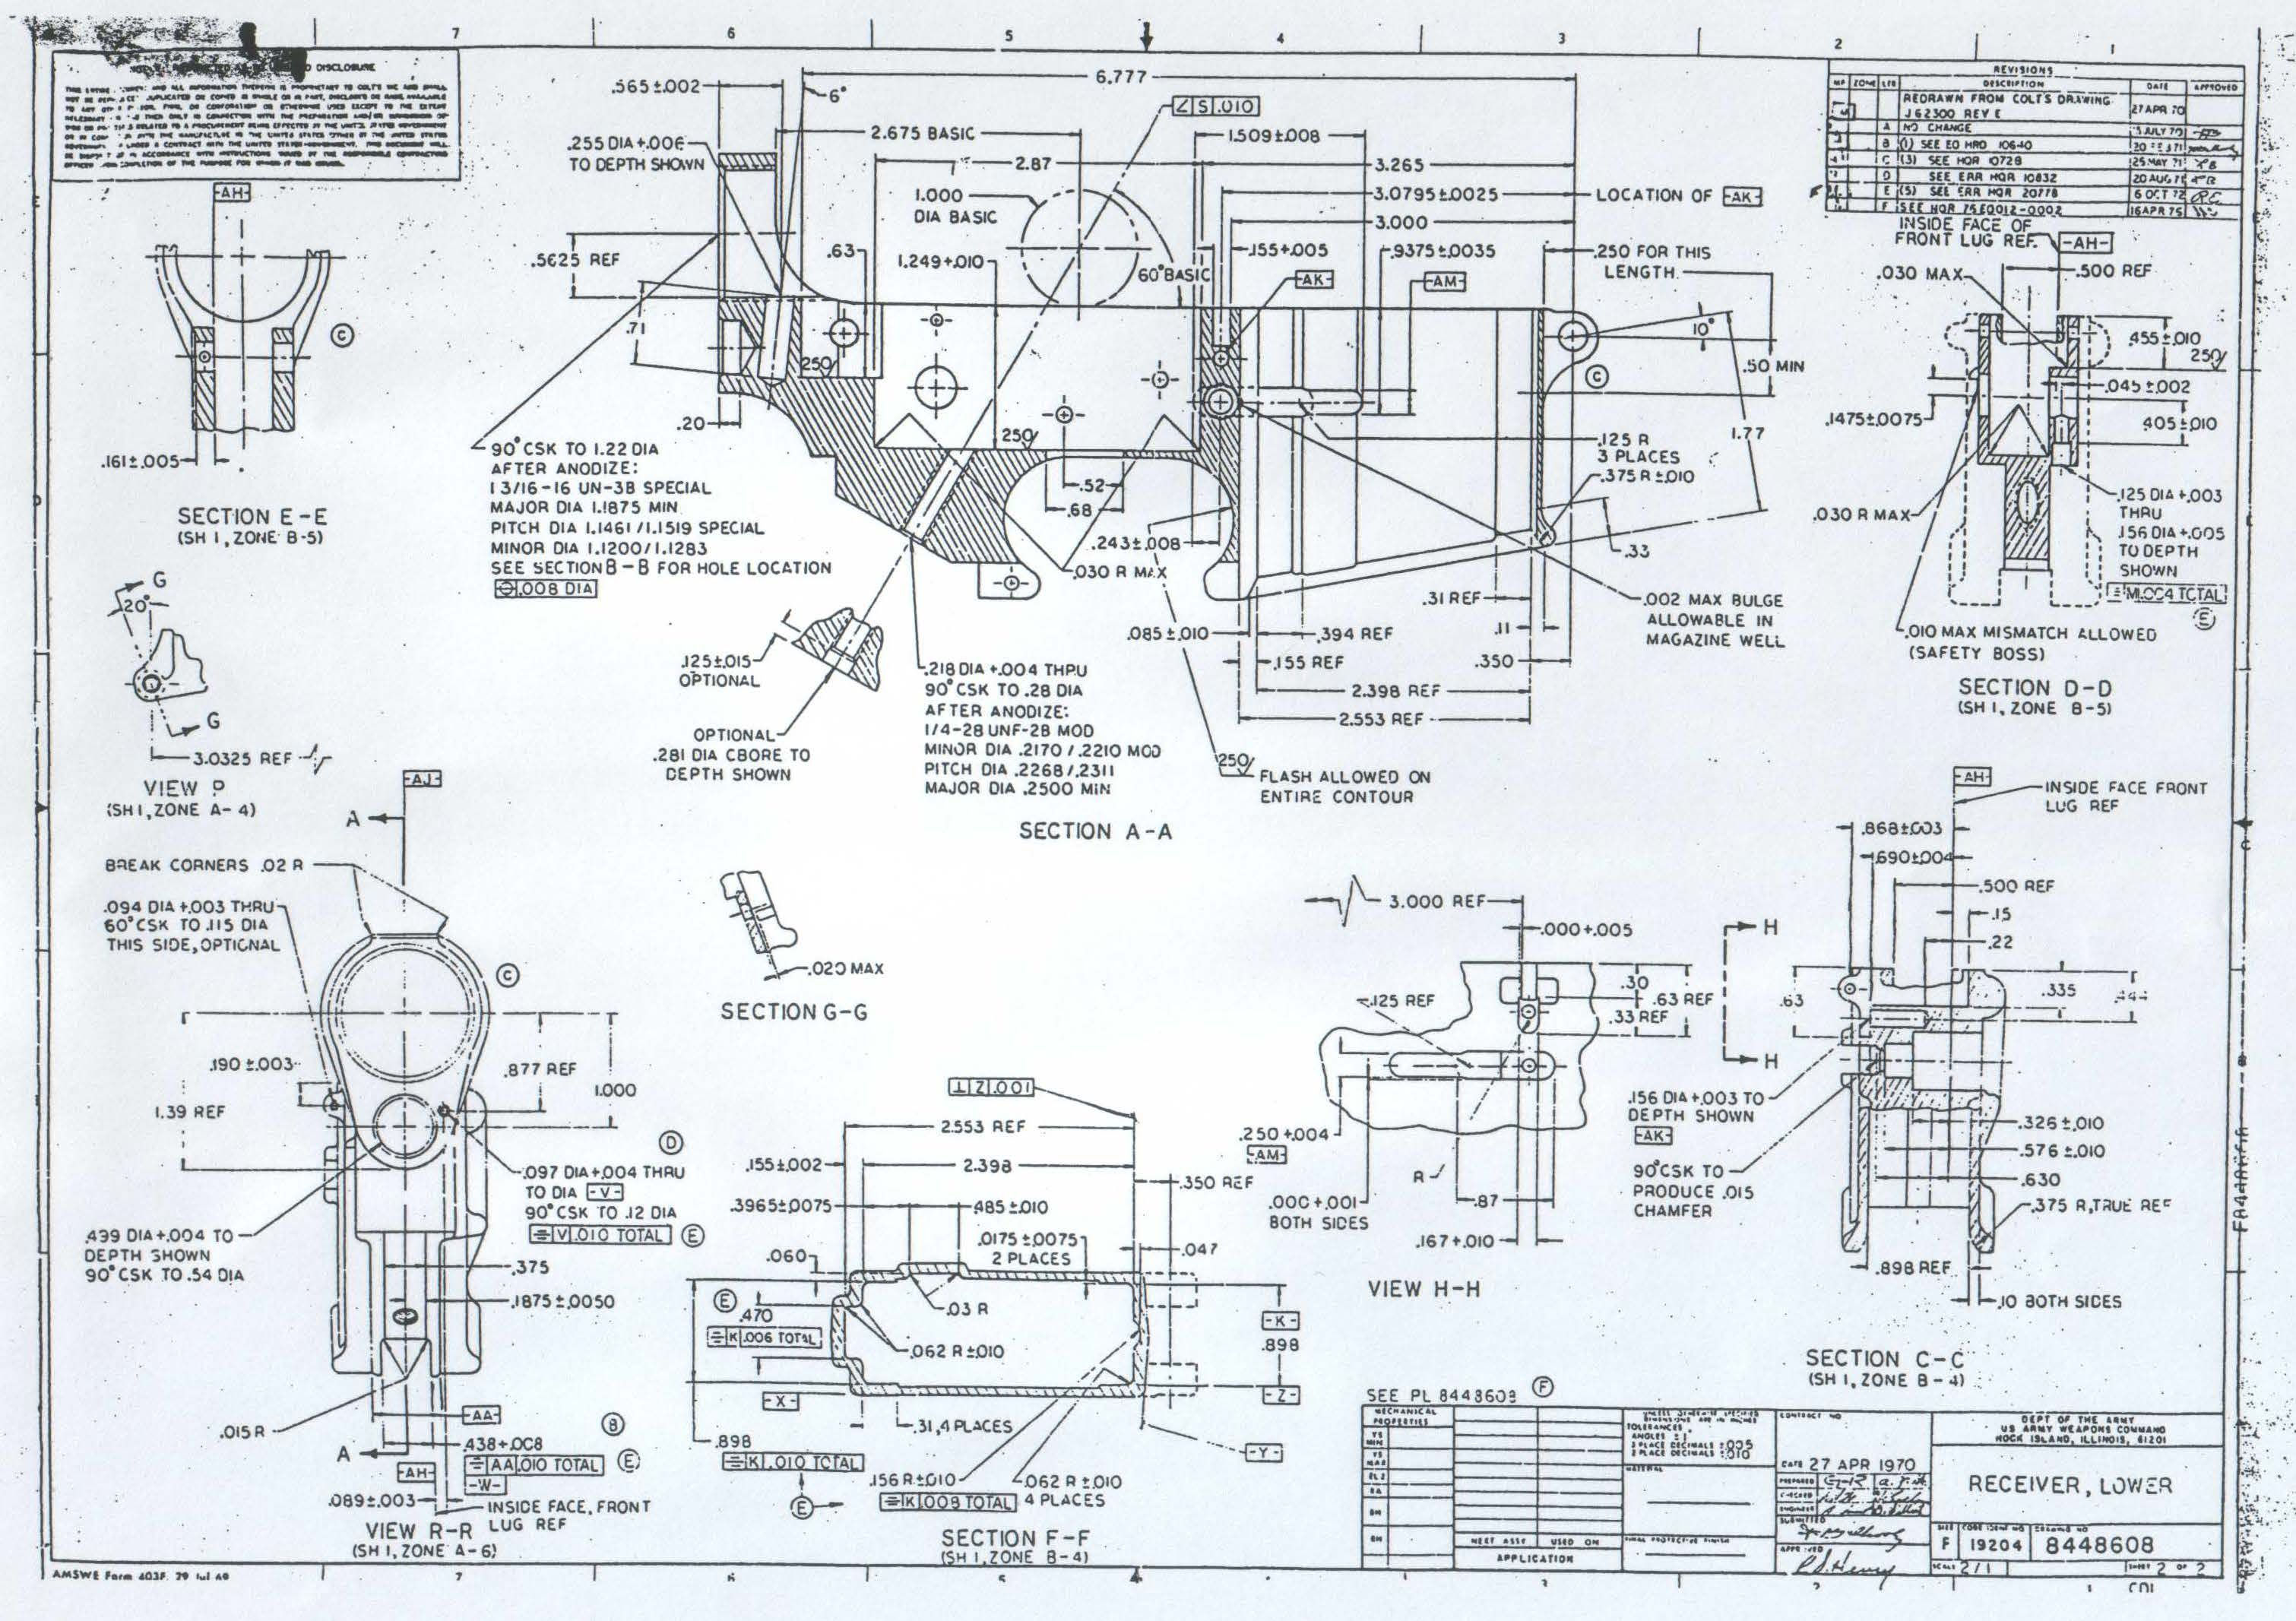 original army ordinance department blueprints for the ar 15 lower reciever [ 3021 x 2133 Pixel ]